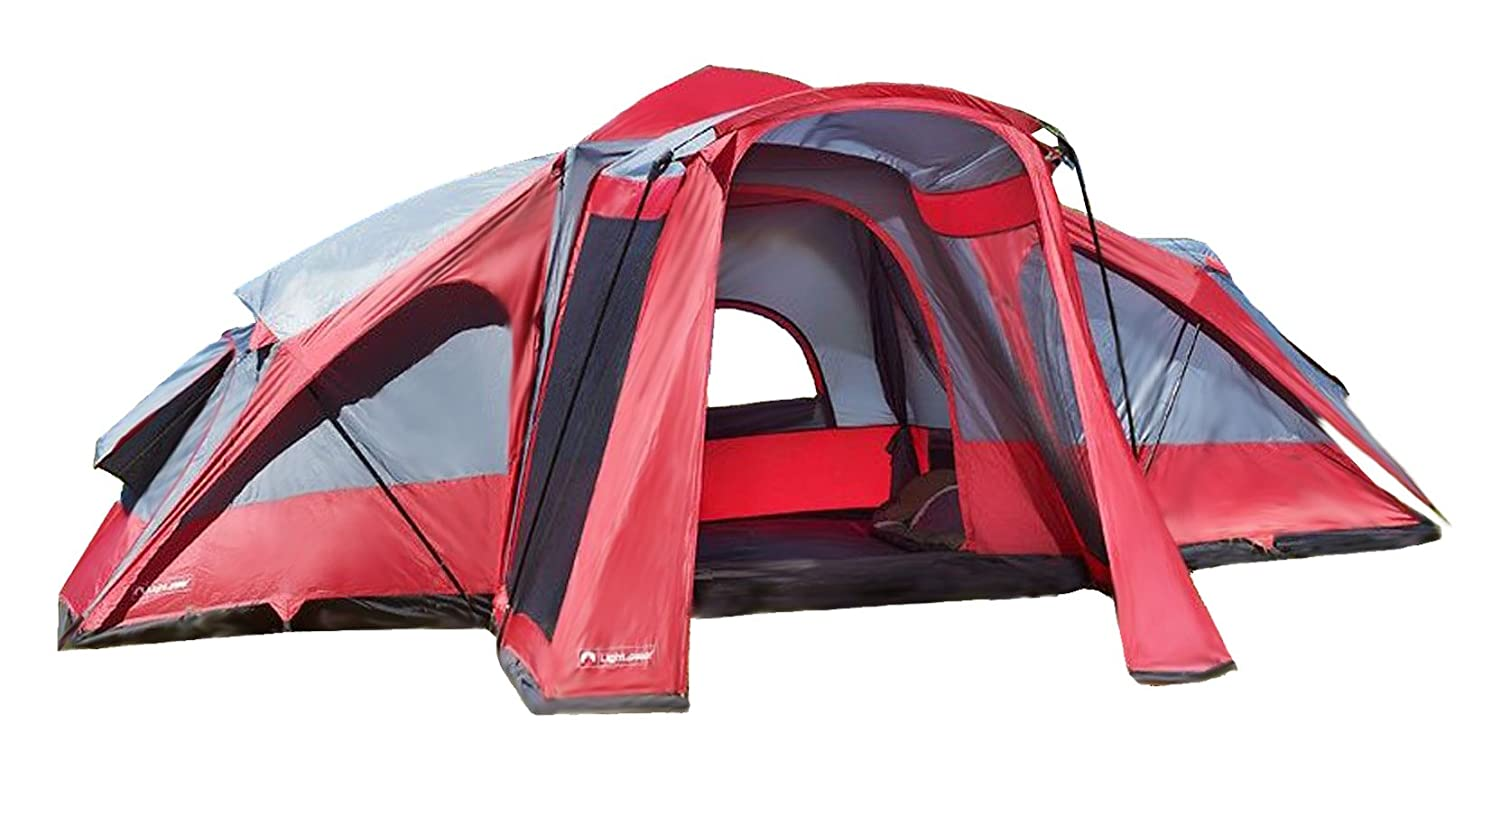 Amazon.com  Lightspeed Outdoors 3-Room Compound 8-Person Instant Tent Red  Family Tents  Sports u0026 Outdoors  sc 1 st  Amazon.com & Amazon.com : Lightspeed Outdoors 3-Room Compound 8-Person Instant ...